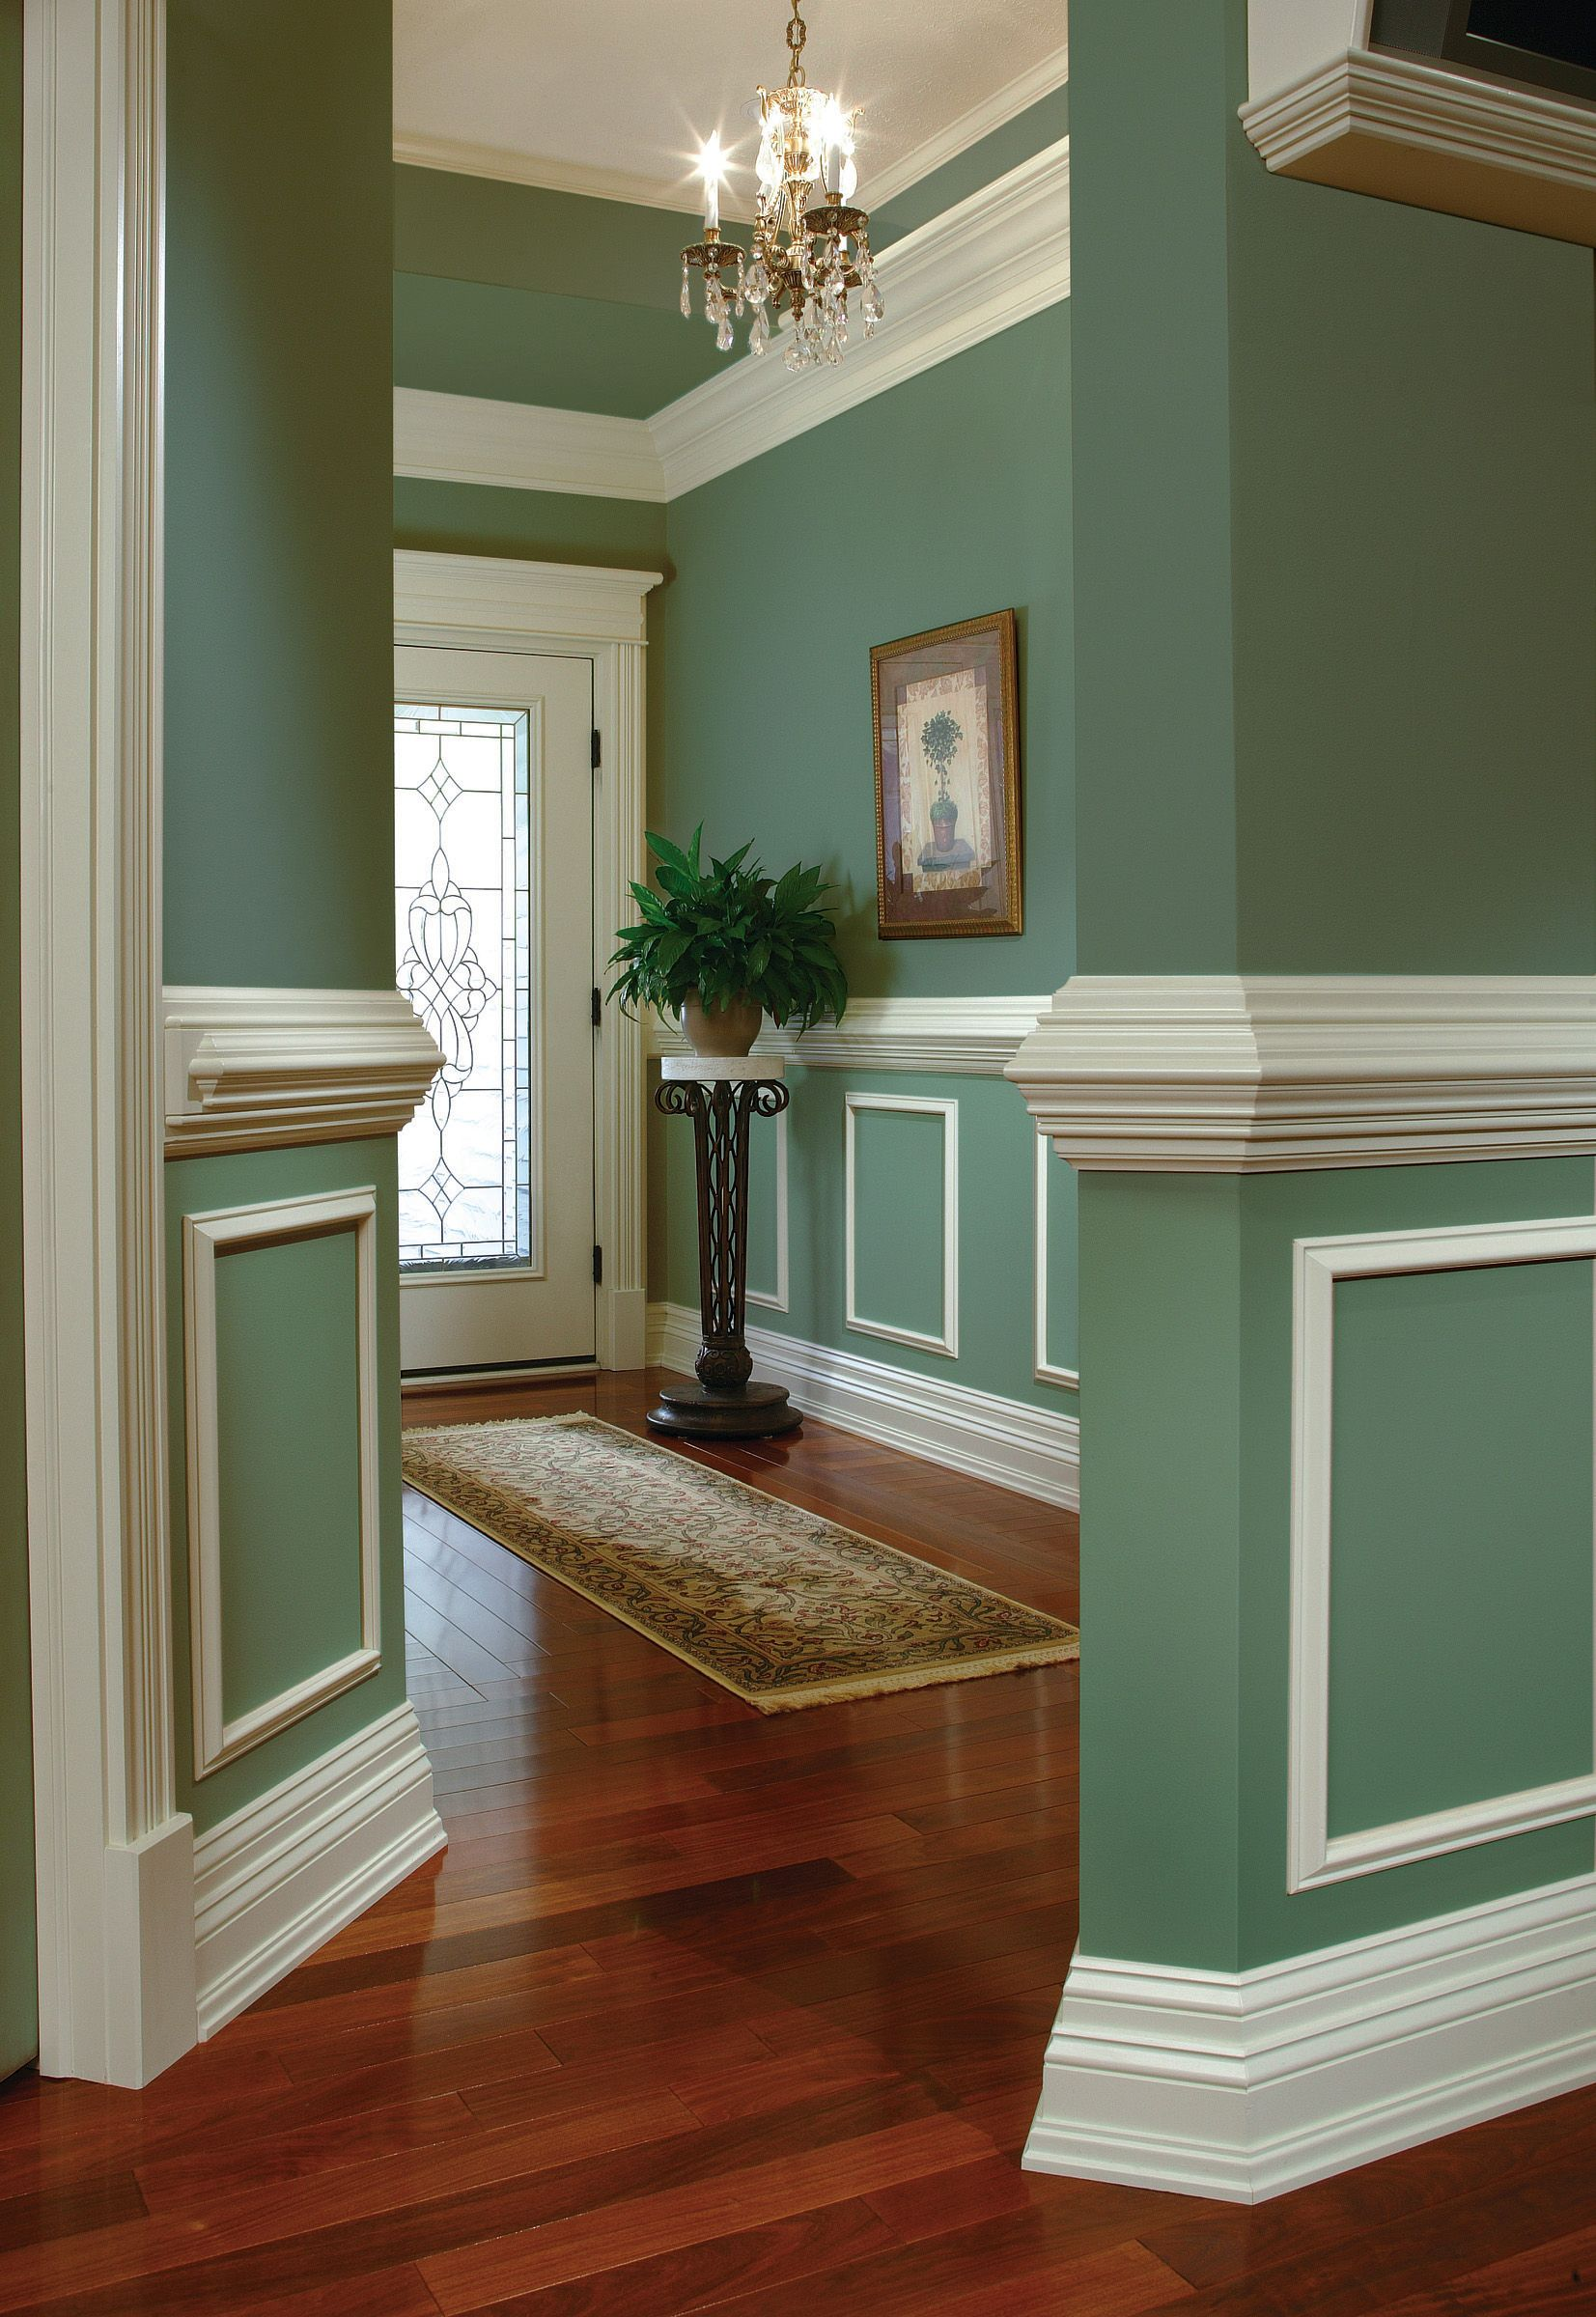 Picture Frame Moulding Below Chair Rail Cheap Reclining Chairs Practical And Decorative A Adds Elegance To